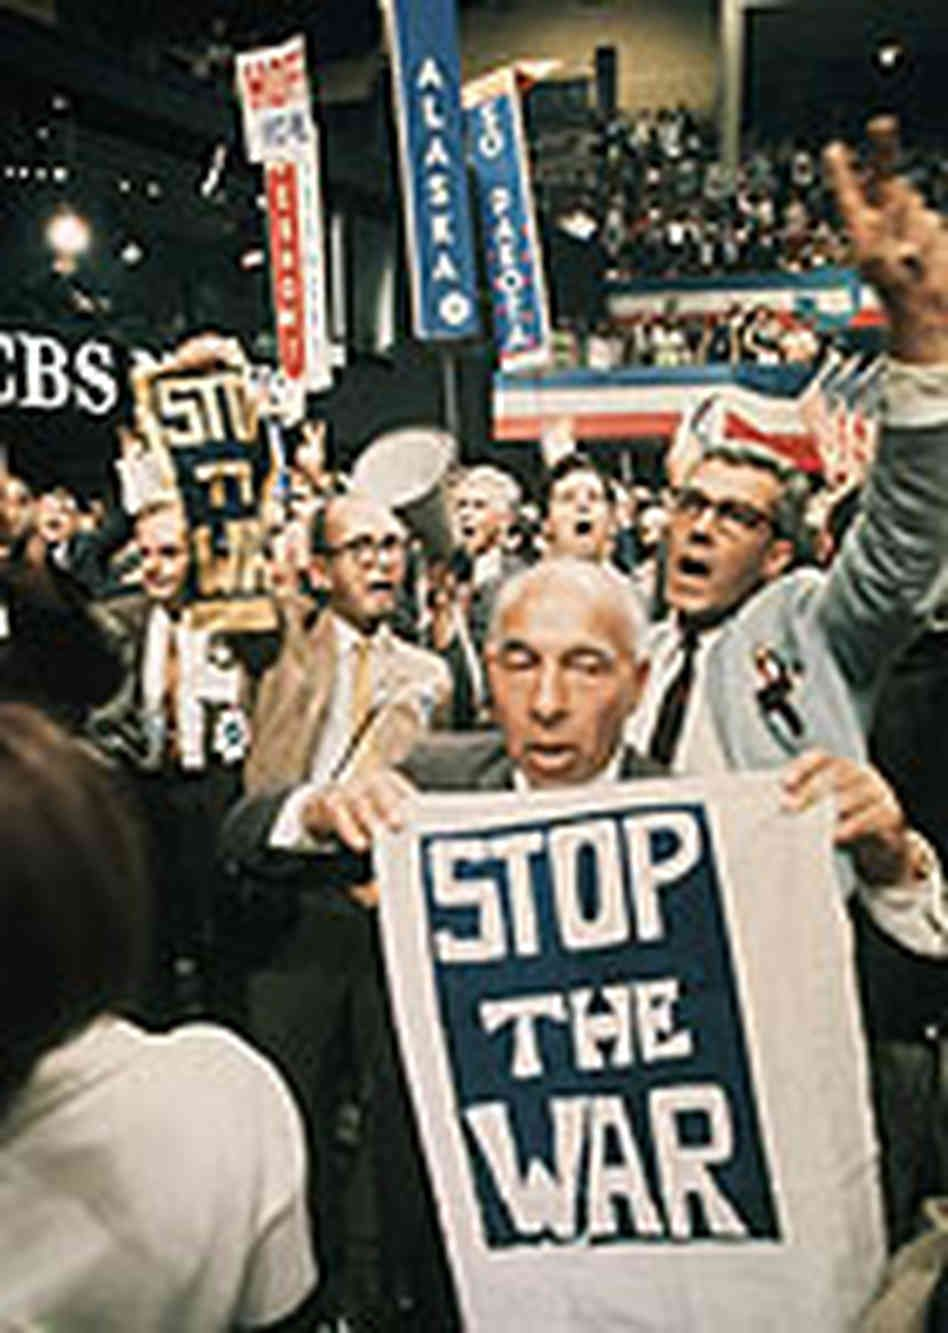 Recalling The Mayhem Of 68 Convention